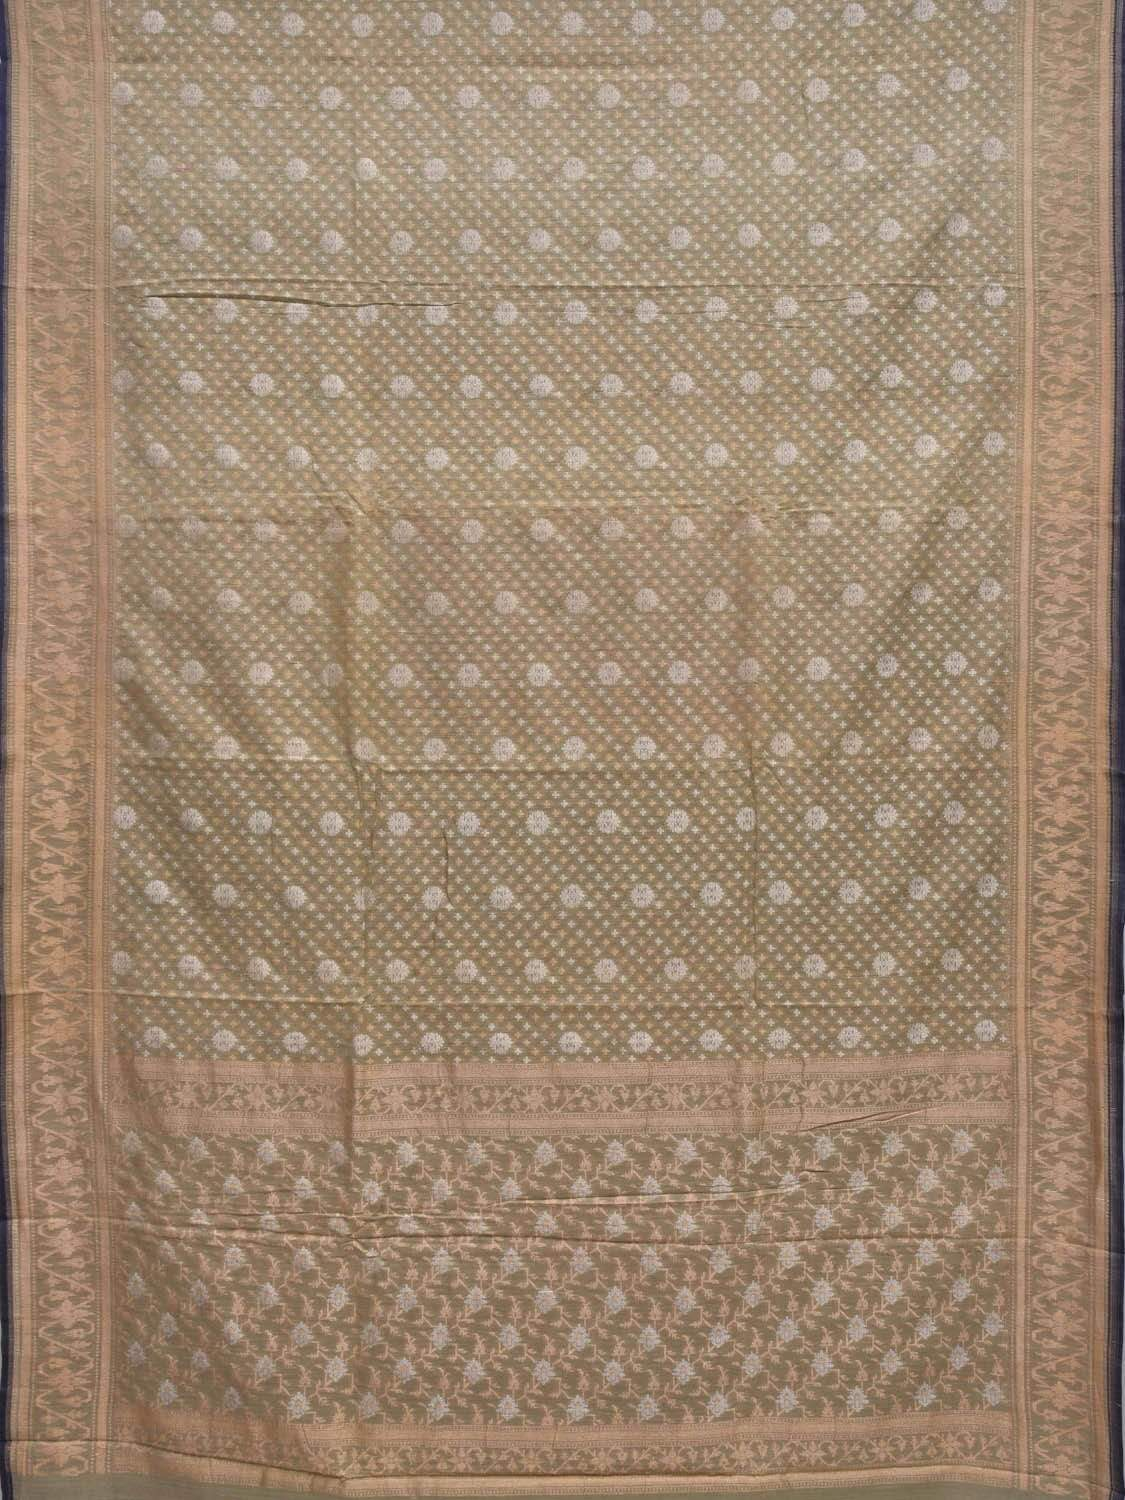 Olive Banaras Cotton Handloom Saree with All Over Buta Cut Work Design b0281